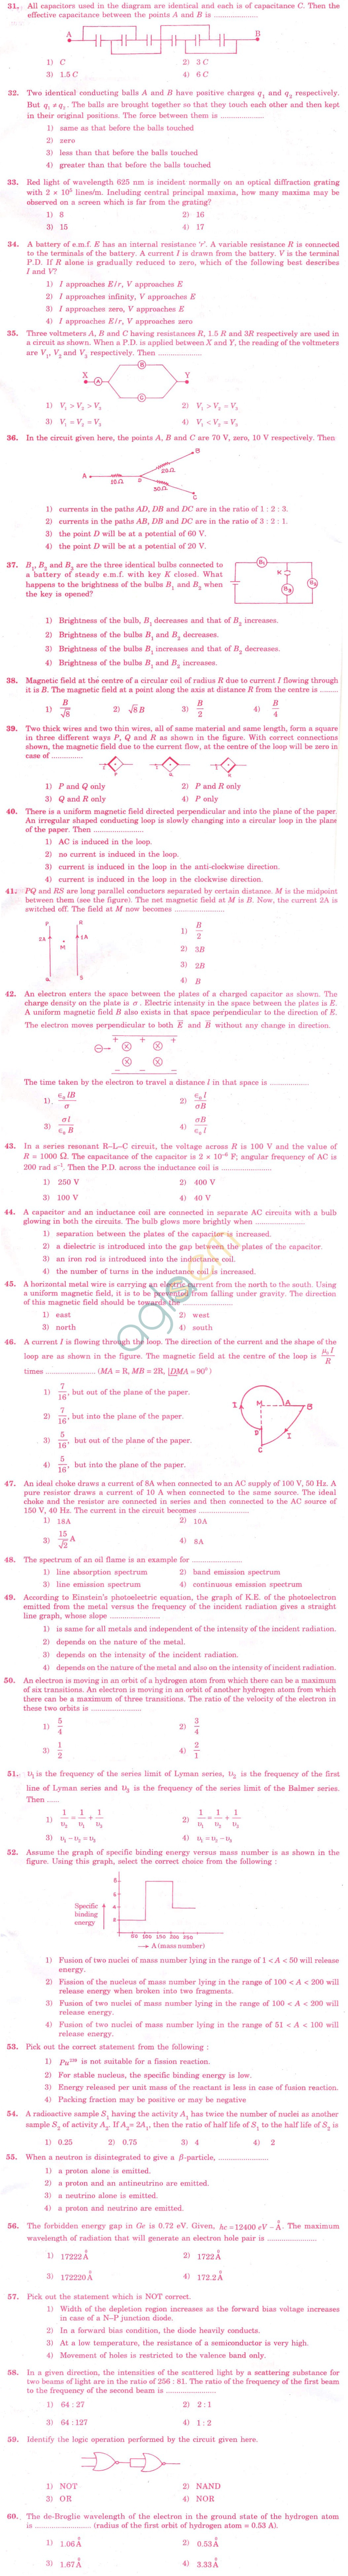 KCET 2010 Question Paper - Physics